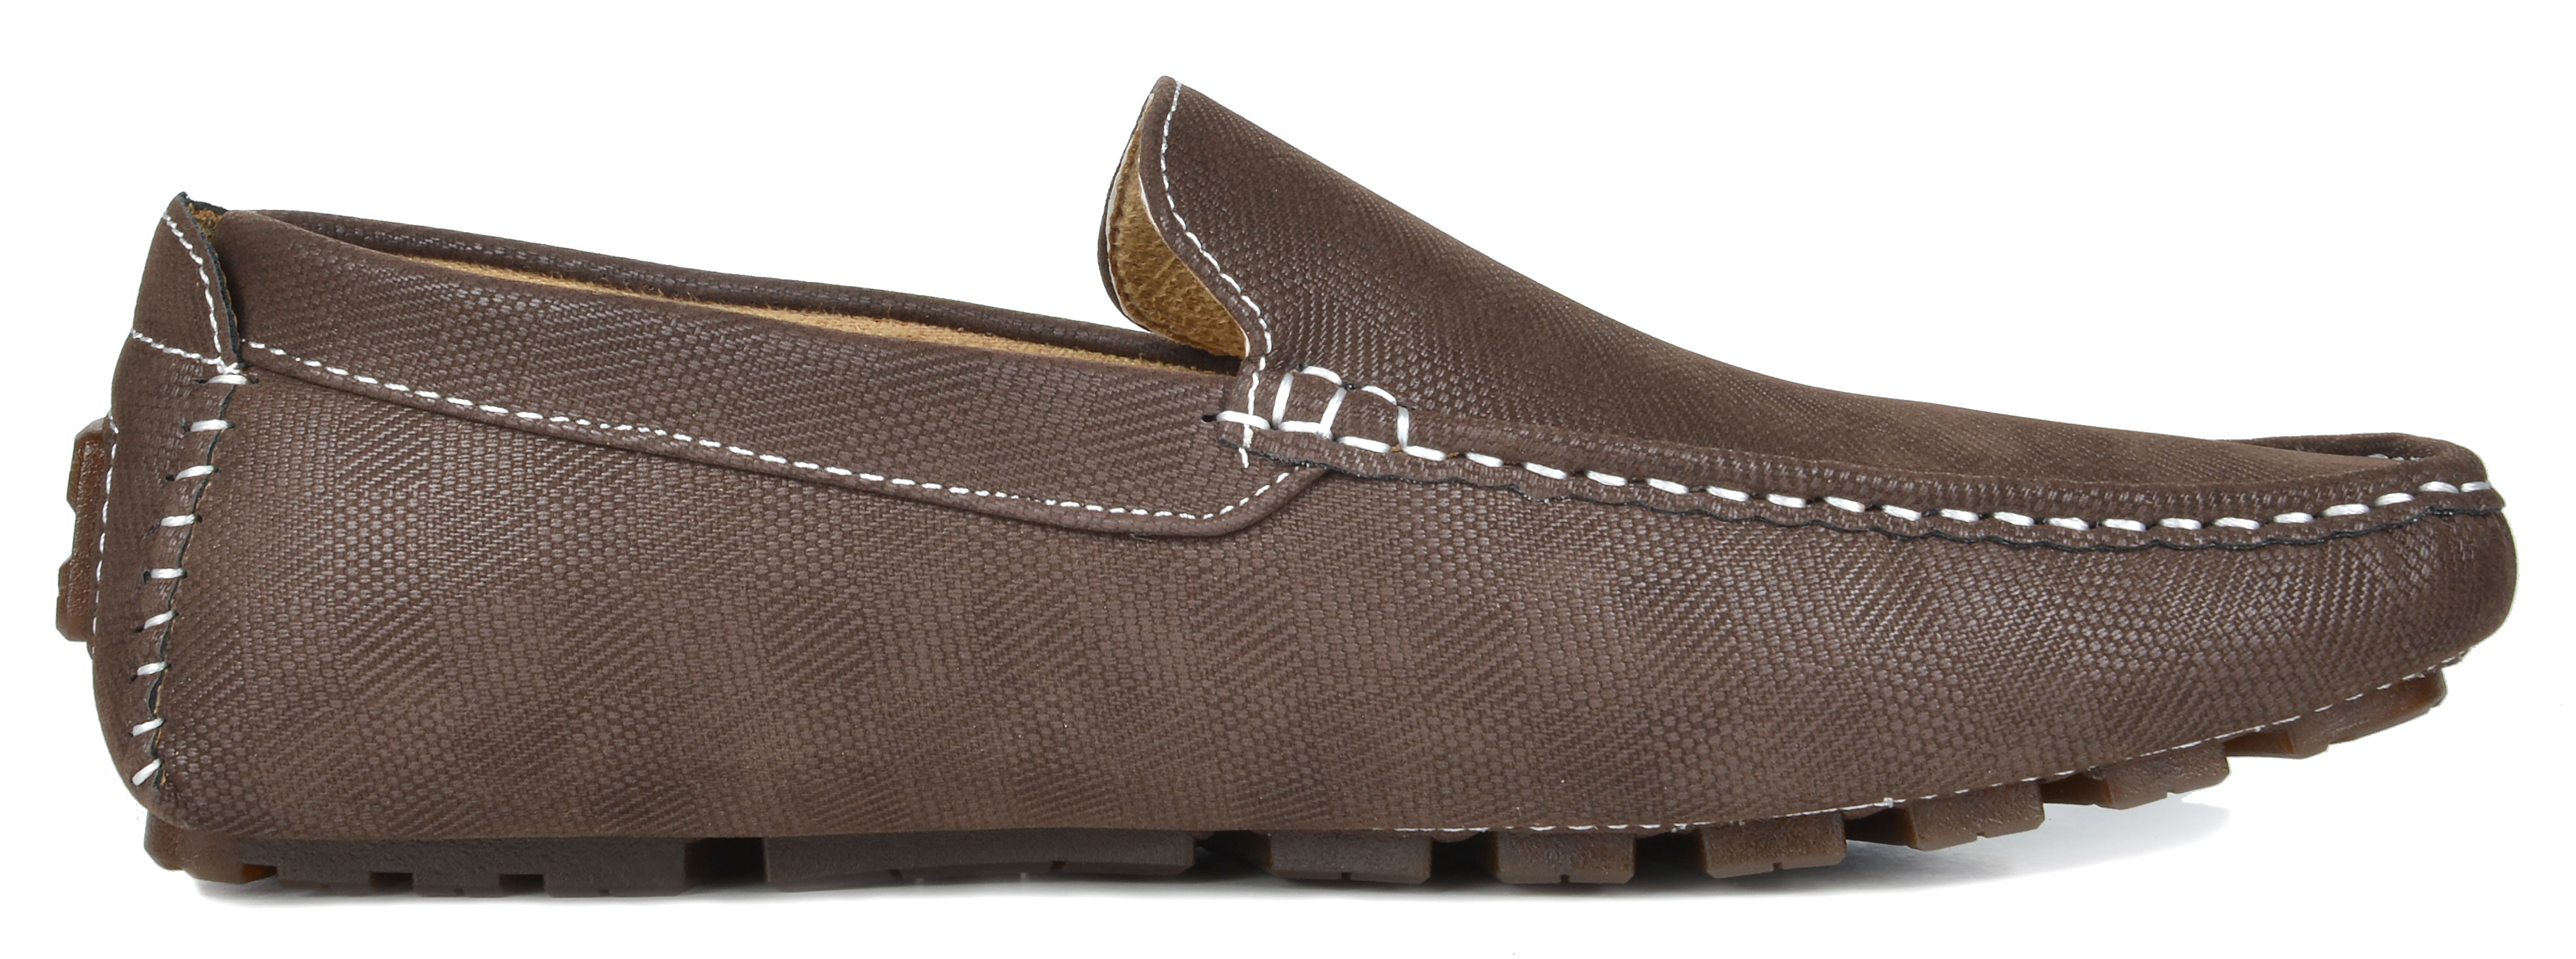 Bruno-Marc-Men-039-s-New-Classic-Fashion-Slip-on-Driving-Casual-Loafers-Boat-Shoes thumbnail 68